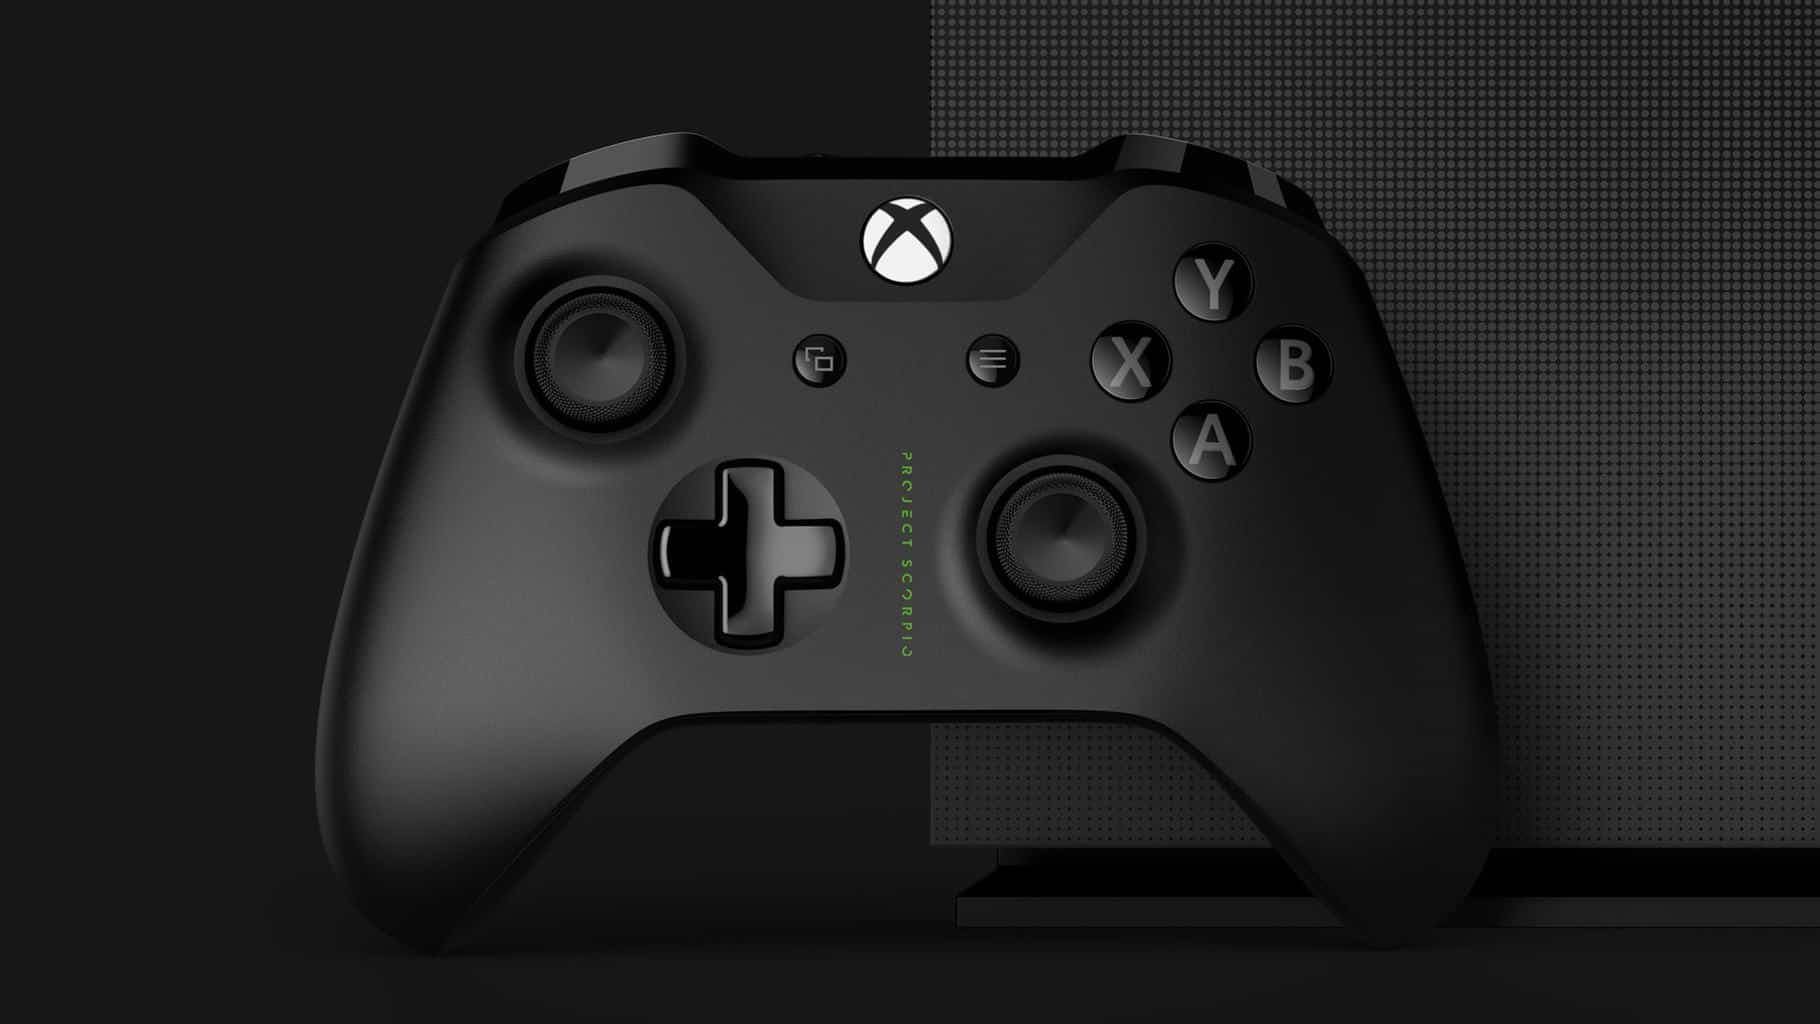 November Fall Wallpaper For Computer Xbox One X To Launch With 70 Enhanced Games